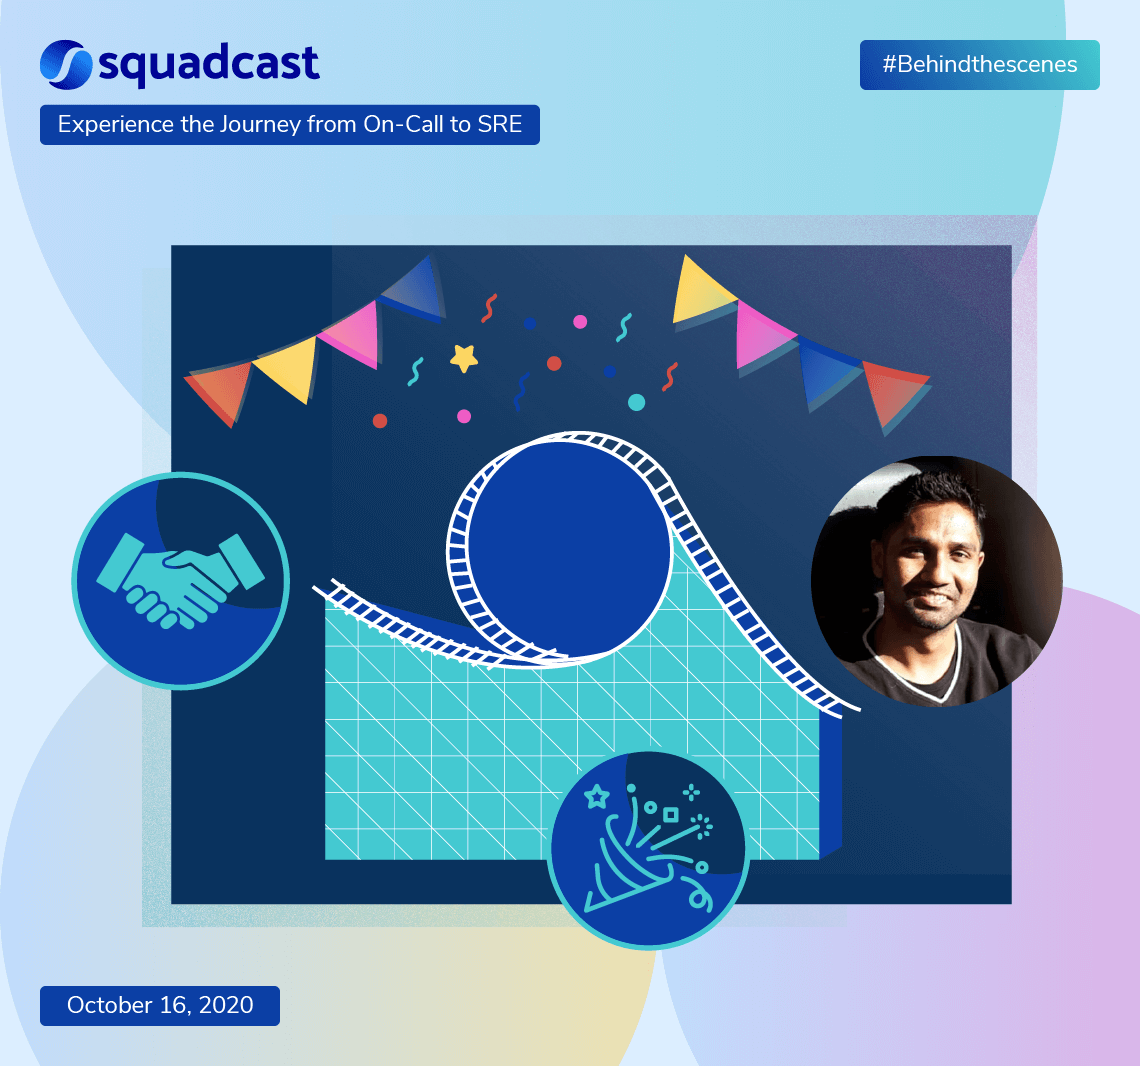 My journey to Squadcast (A roller-coaster ride of learning)